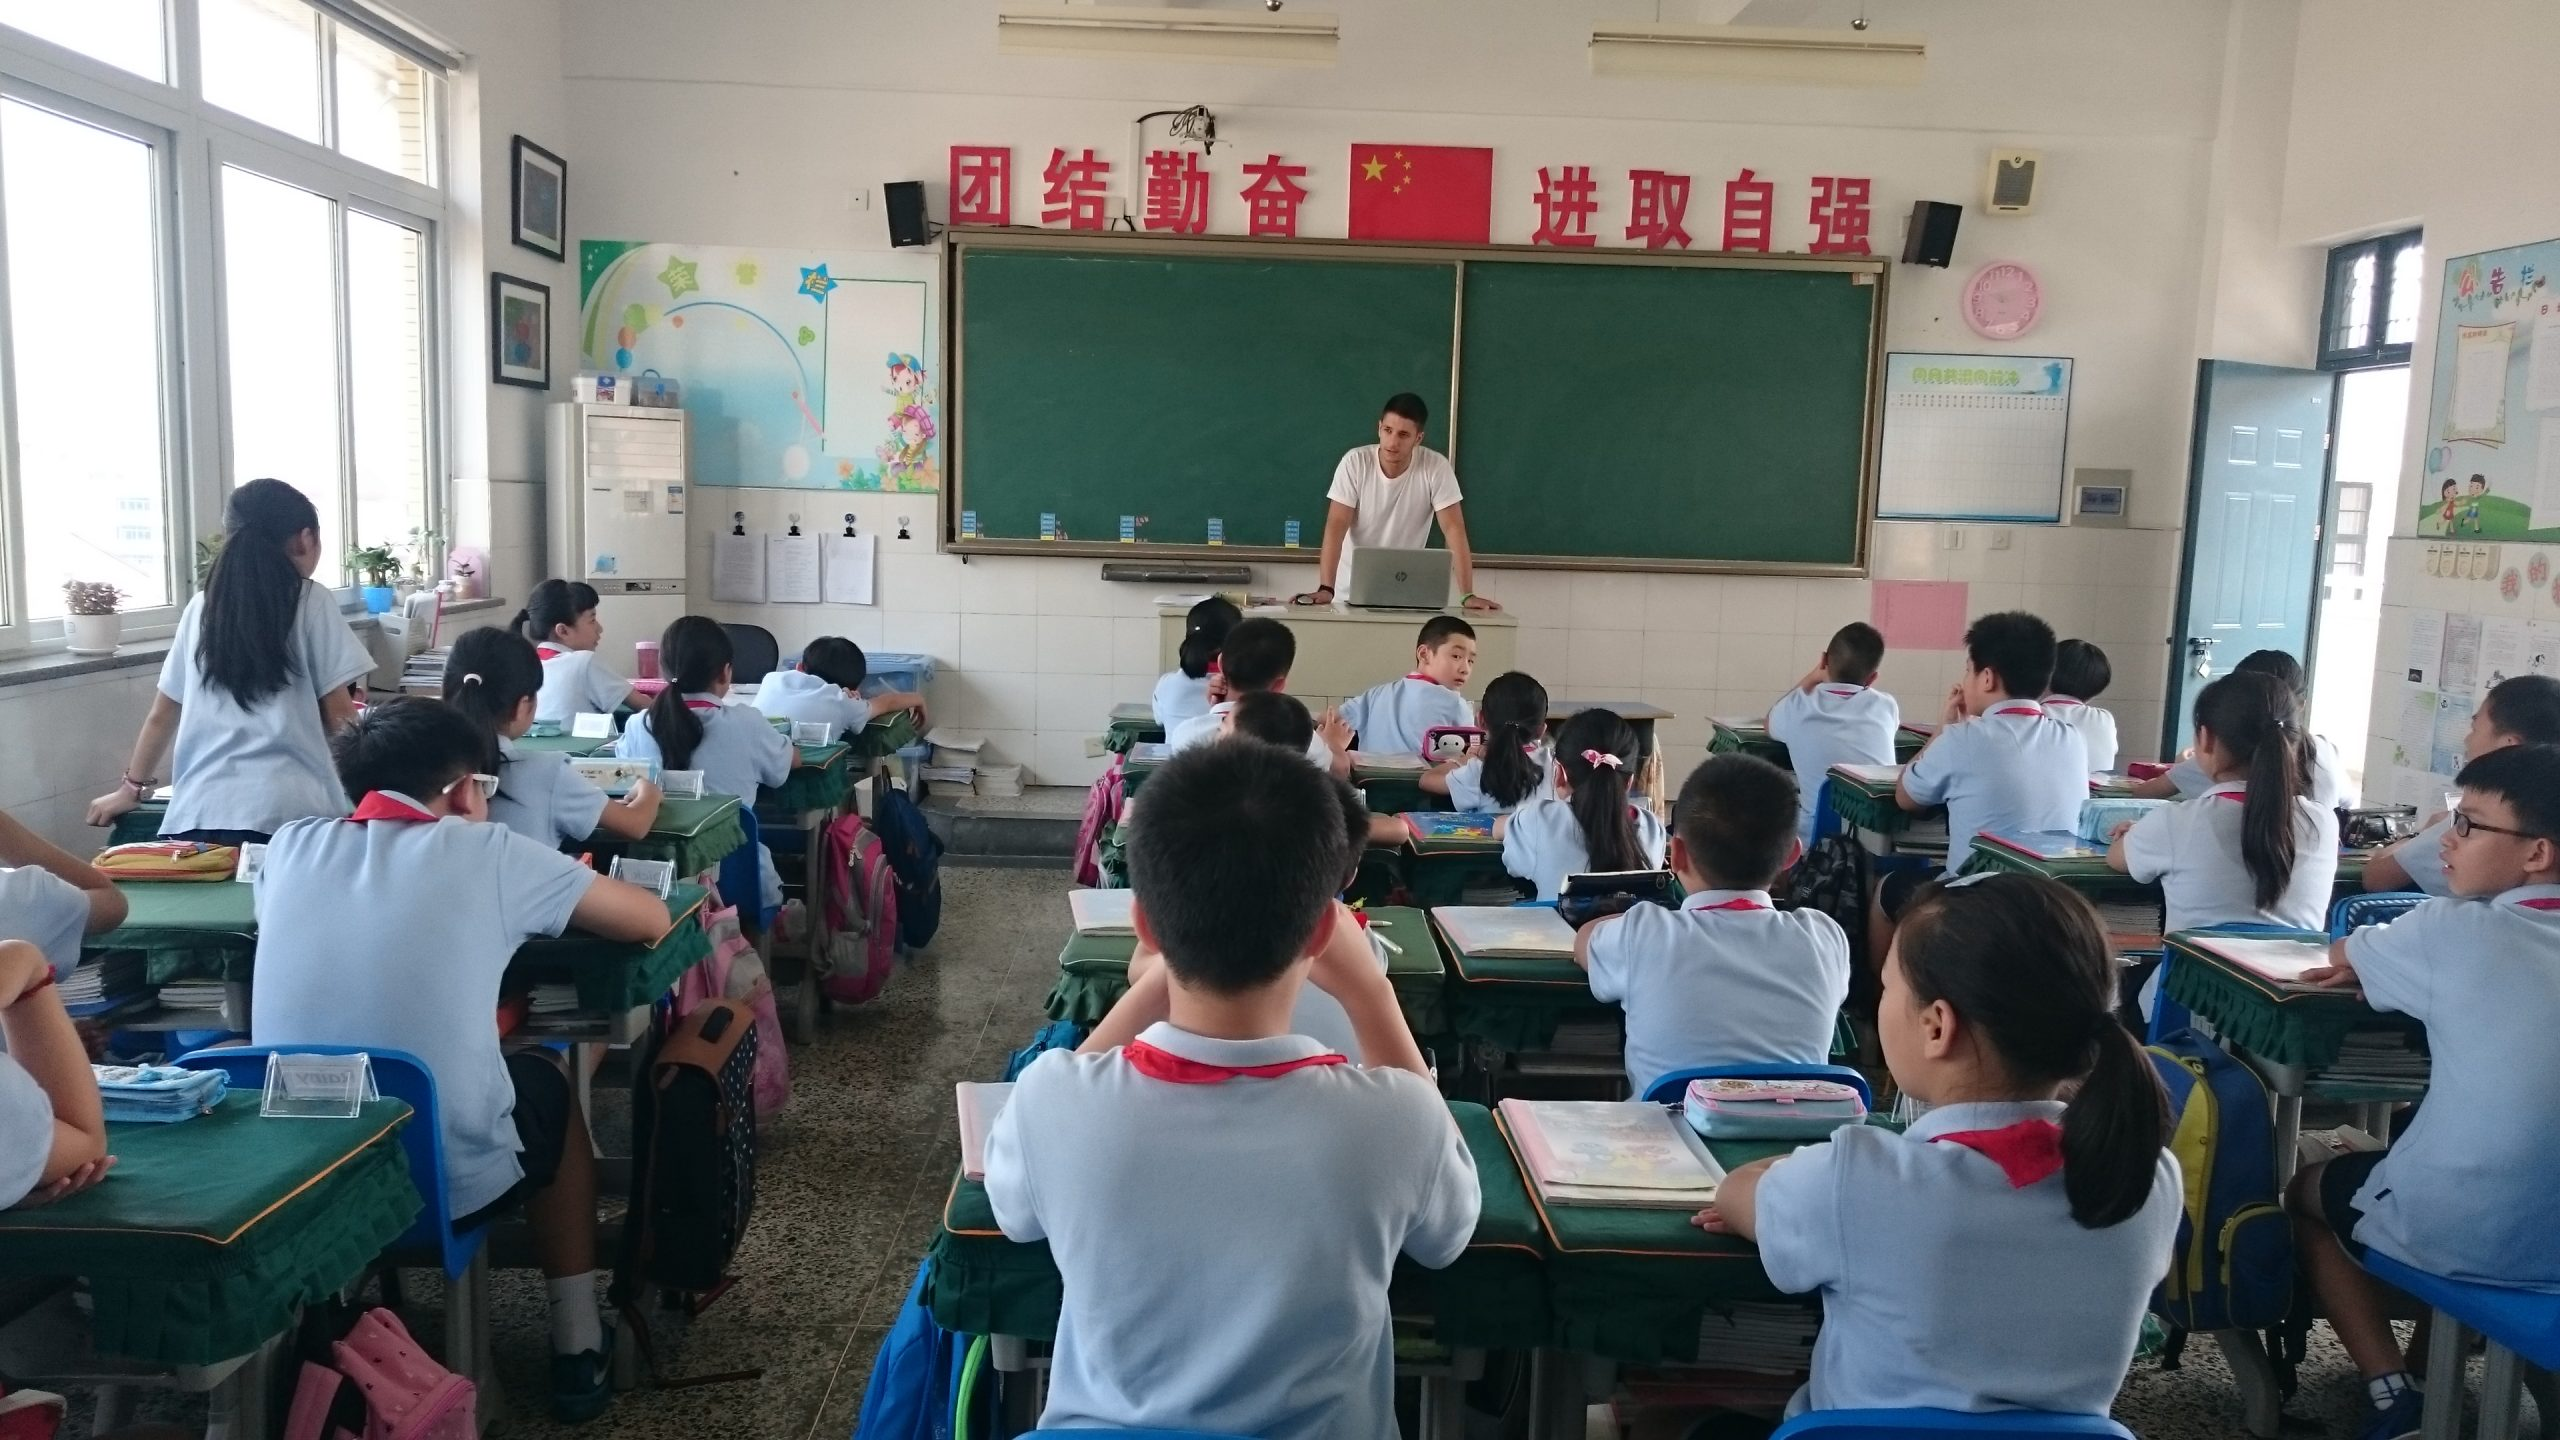 Lin An classroom school teaching english in China ChinaTEFLer